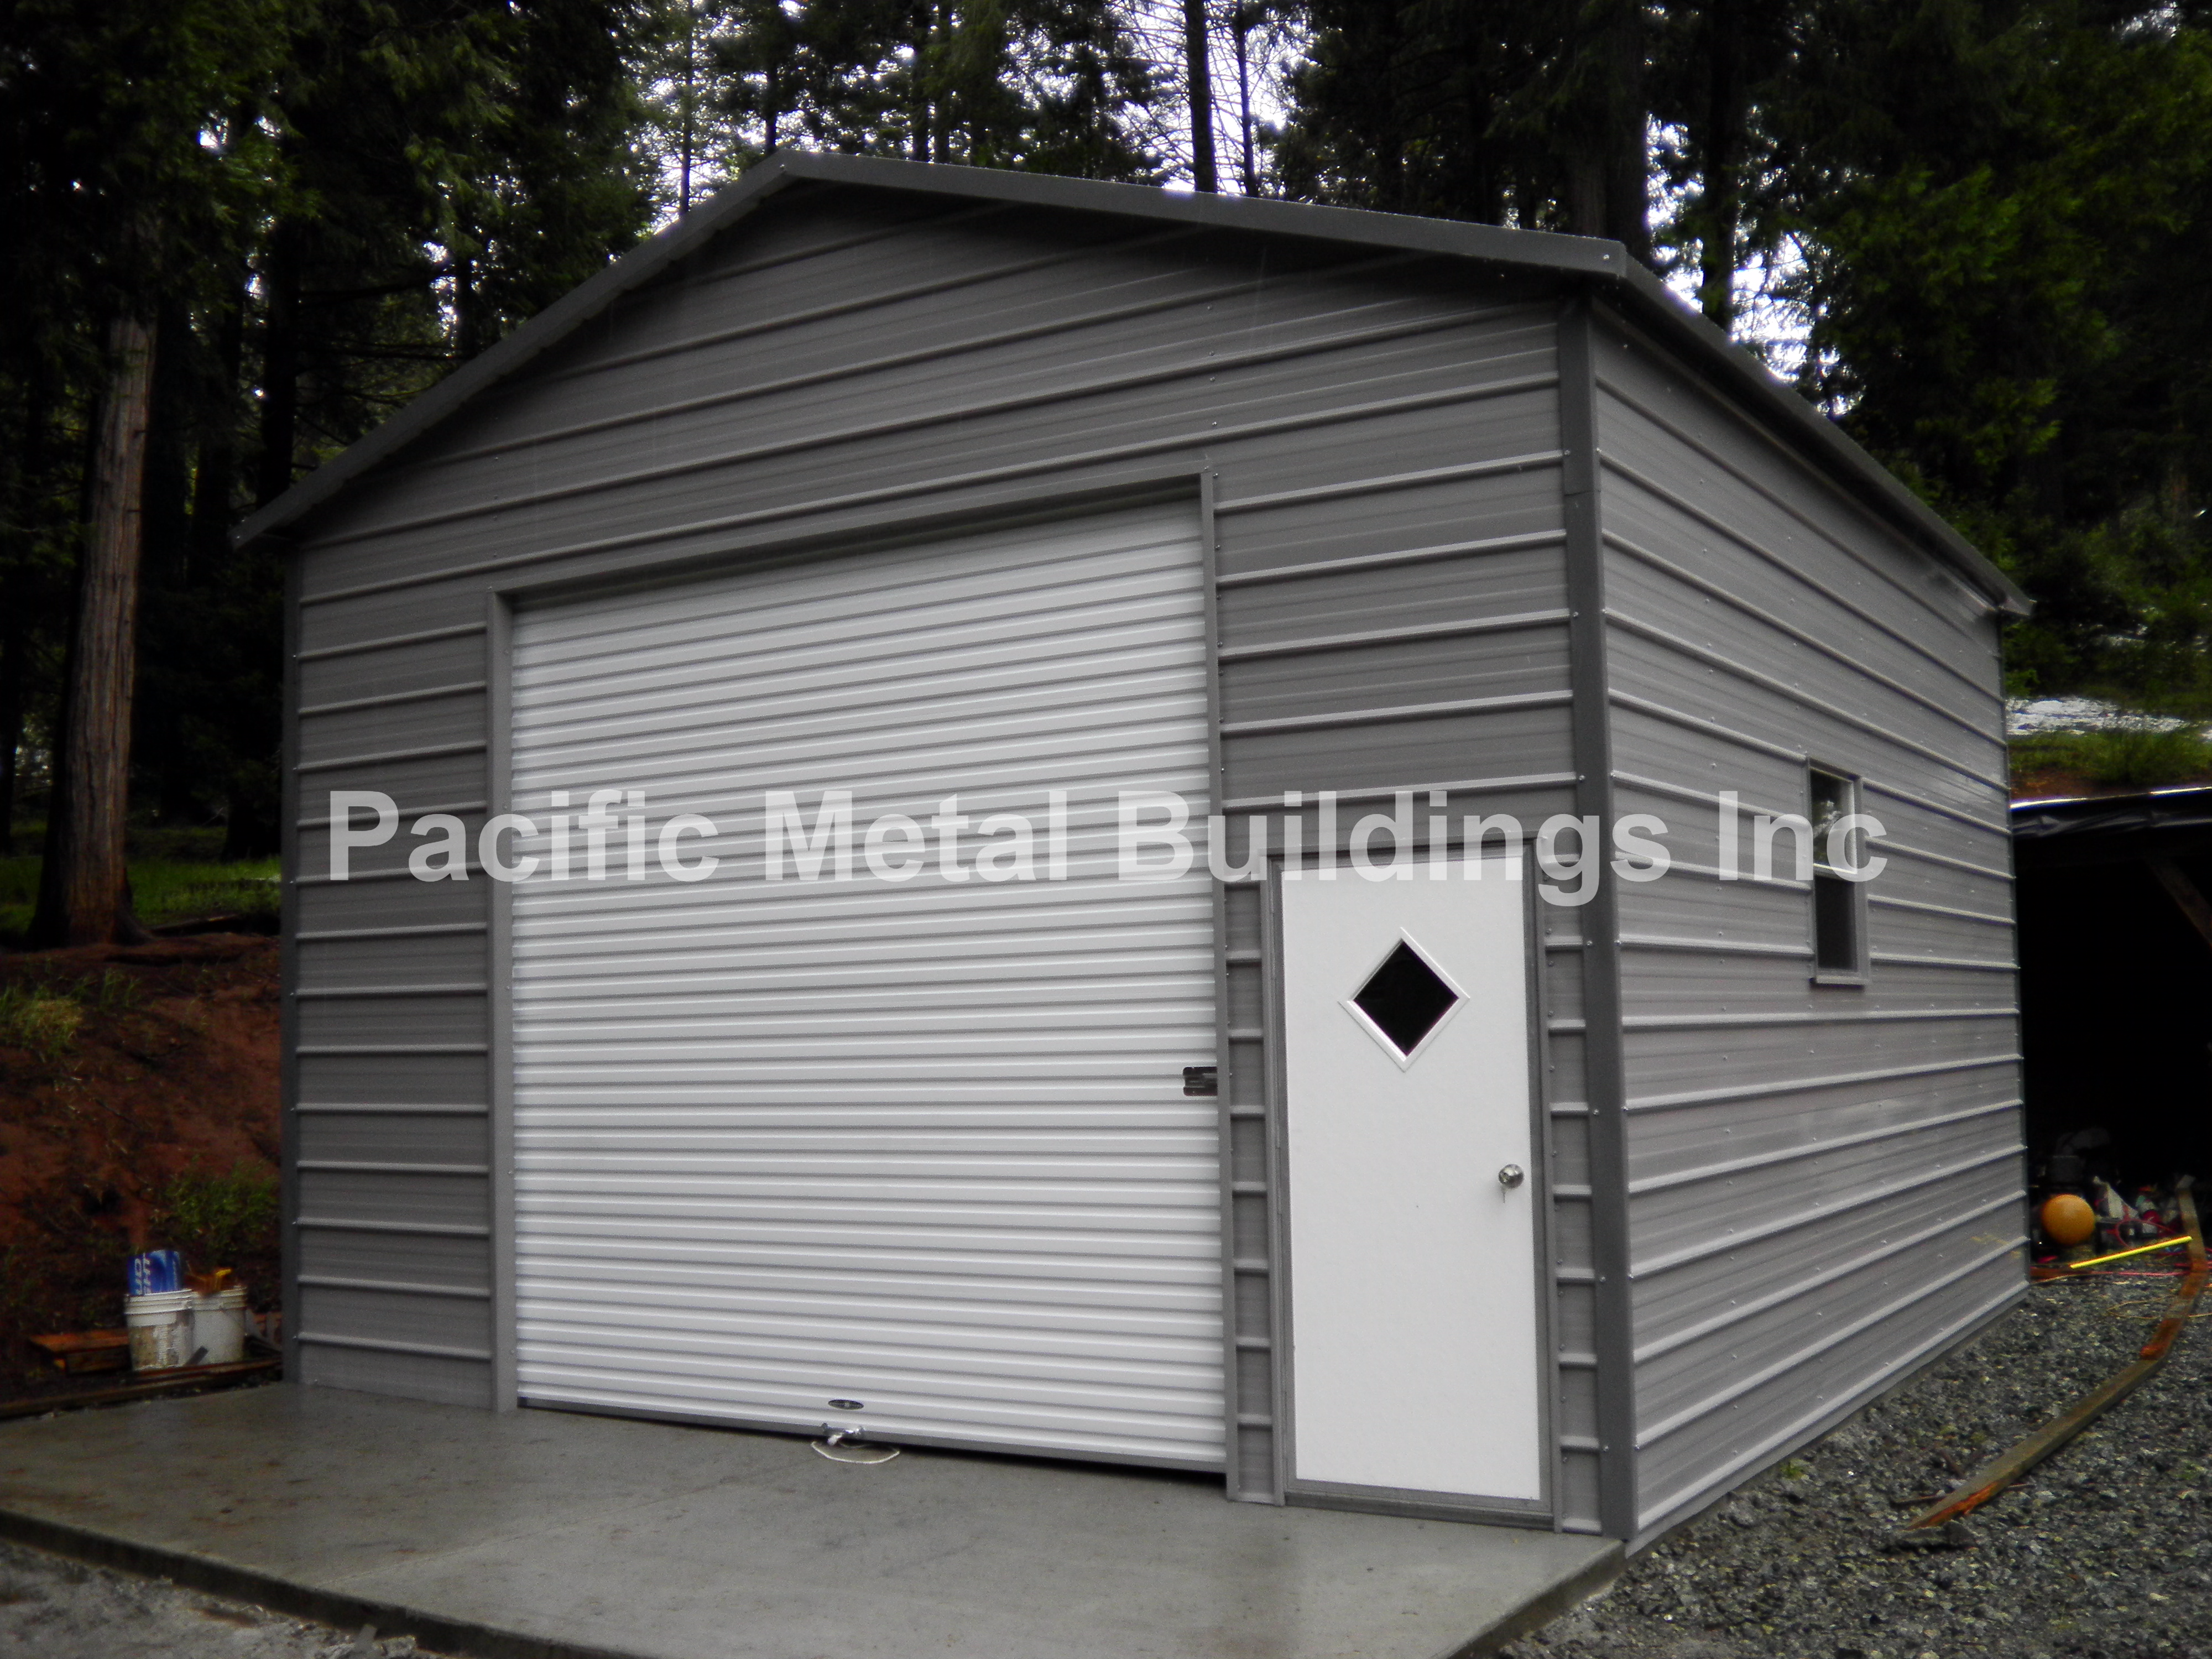 Boxed Eve Style – Professional Engineered Buildings